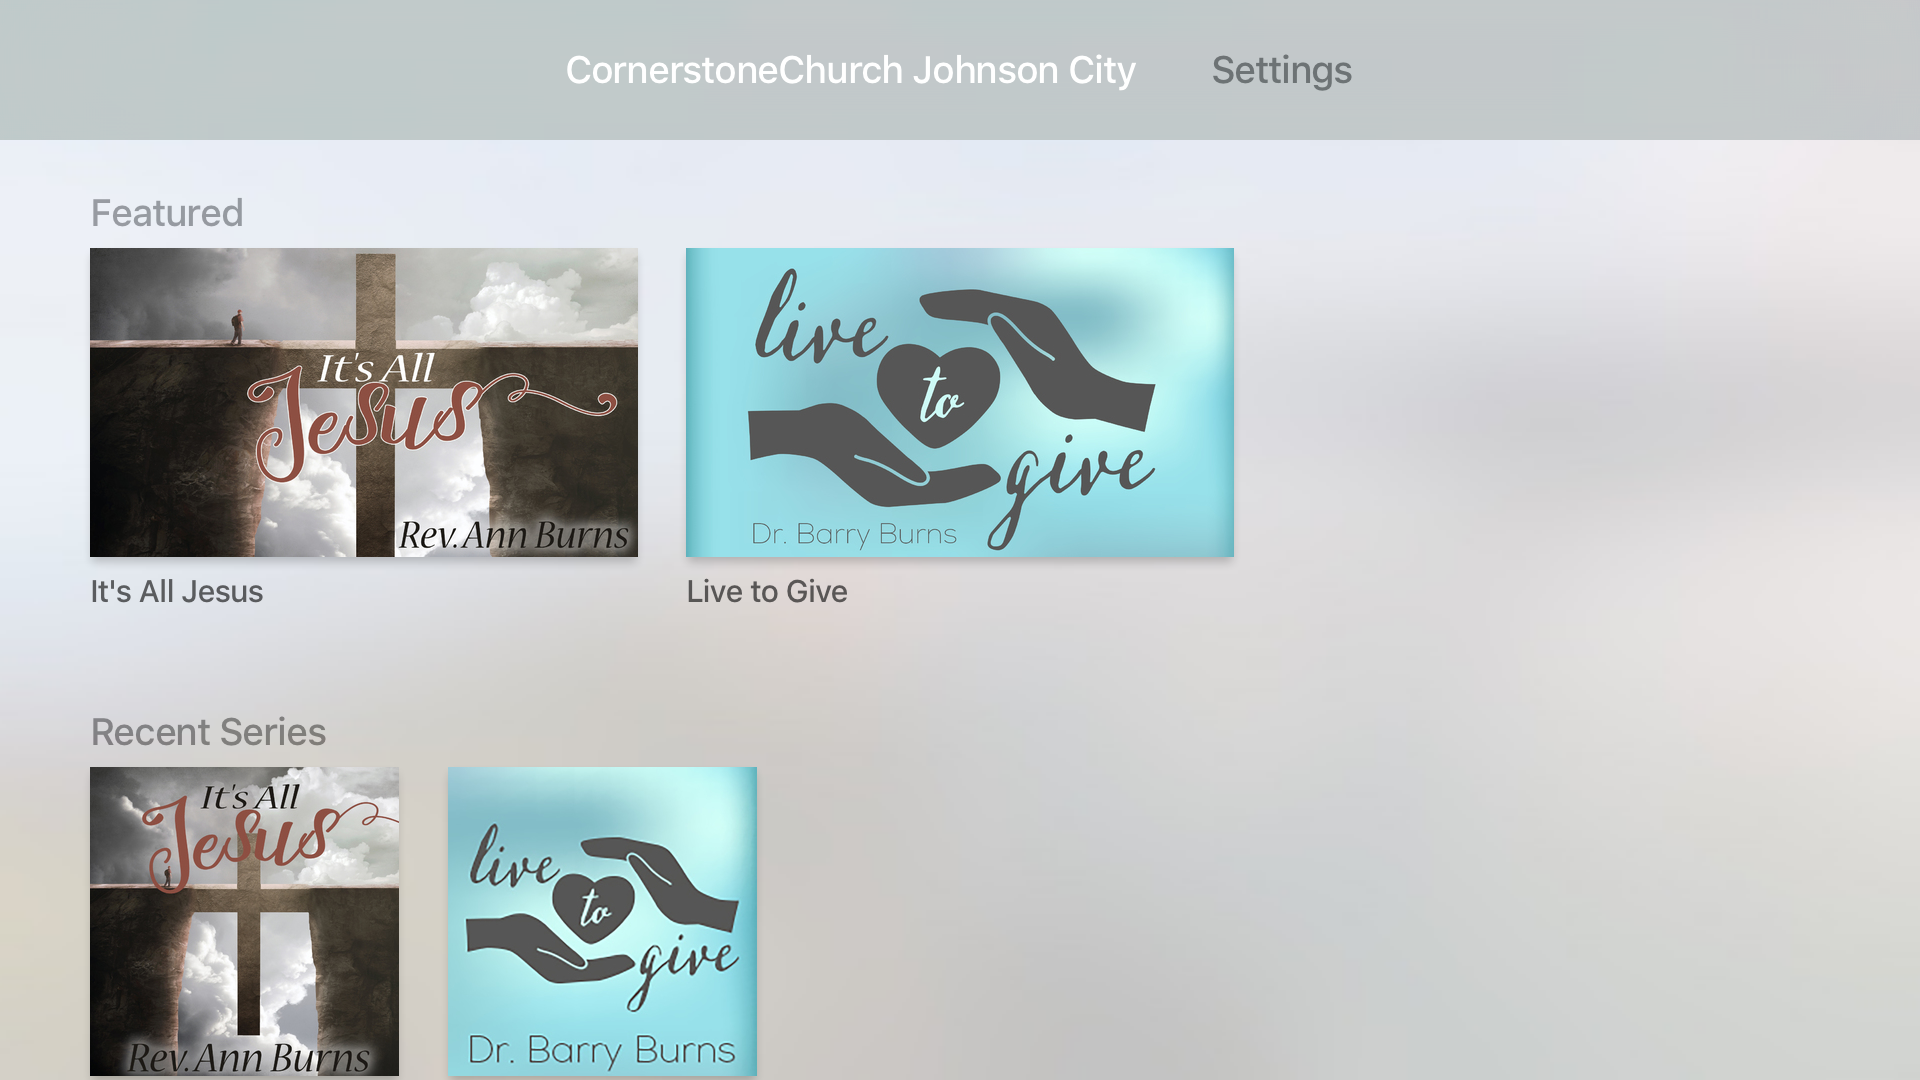 CornerstoneChurch Johnson City screenshot 7